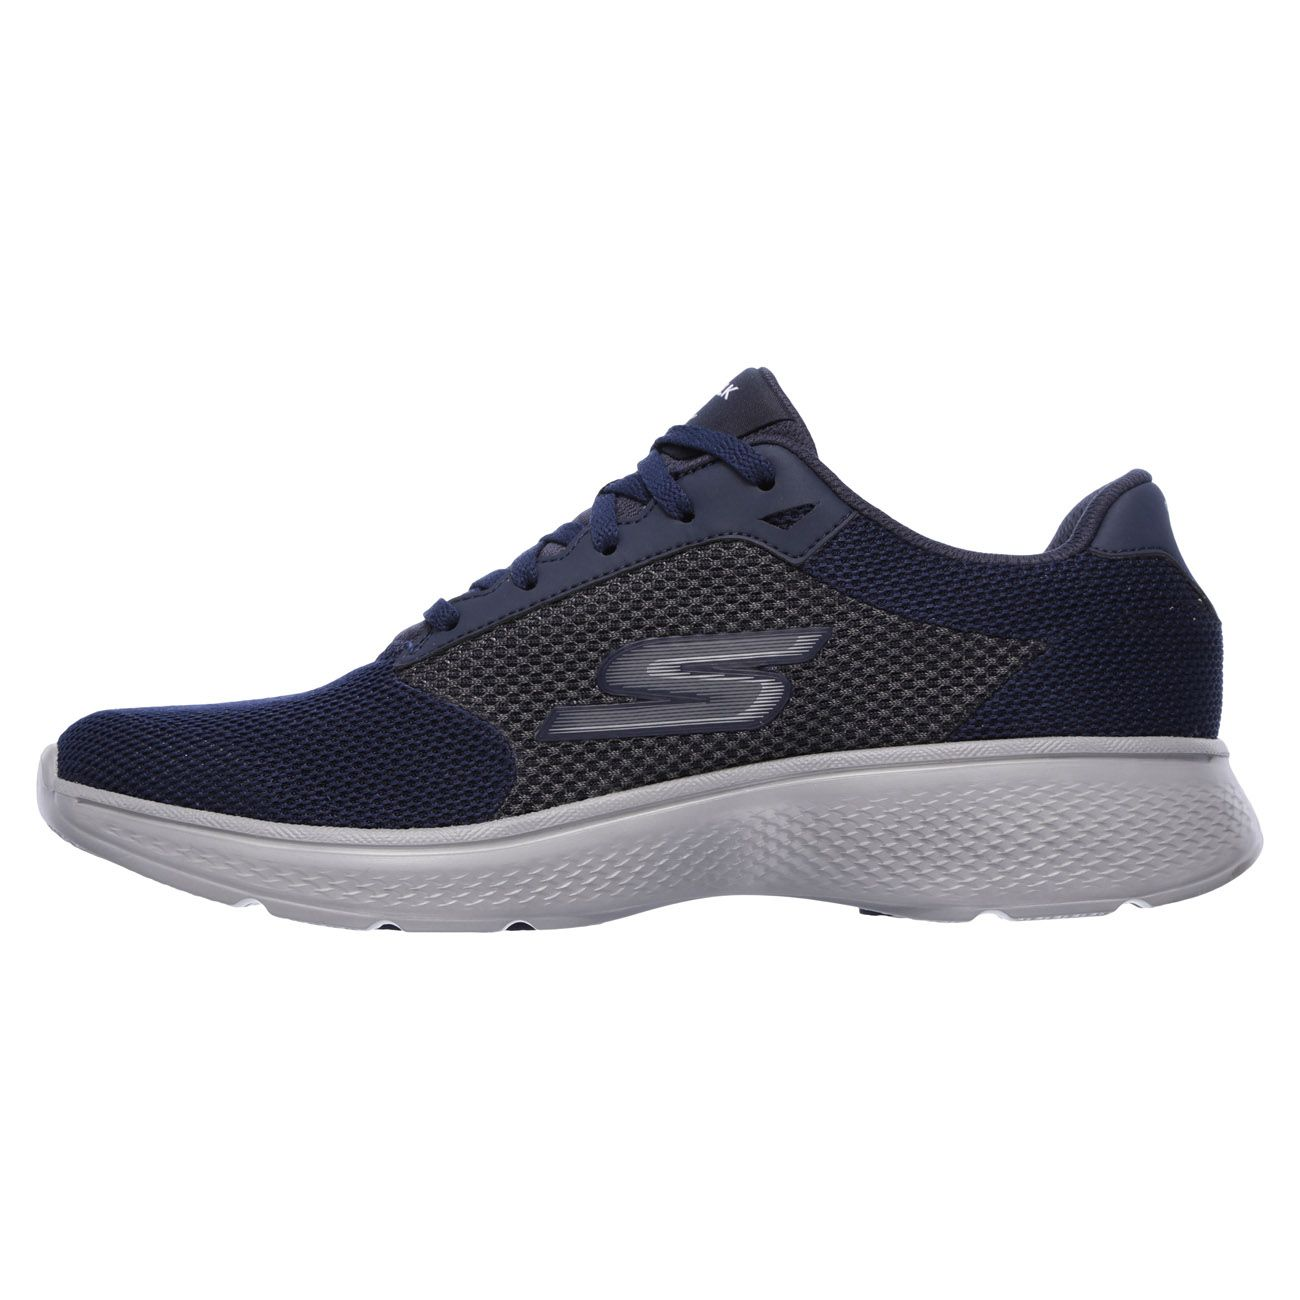 skechers go walk 4 lace up mens walking shoes